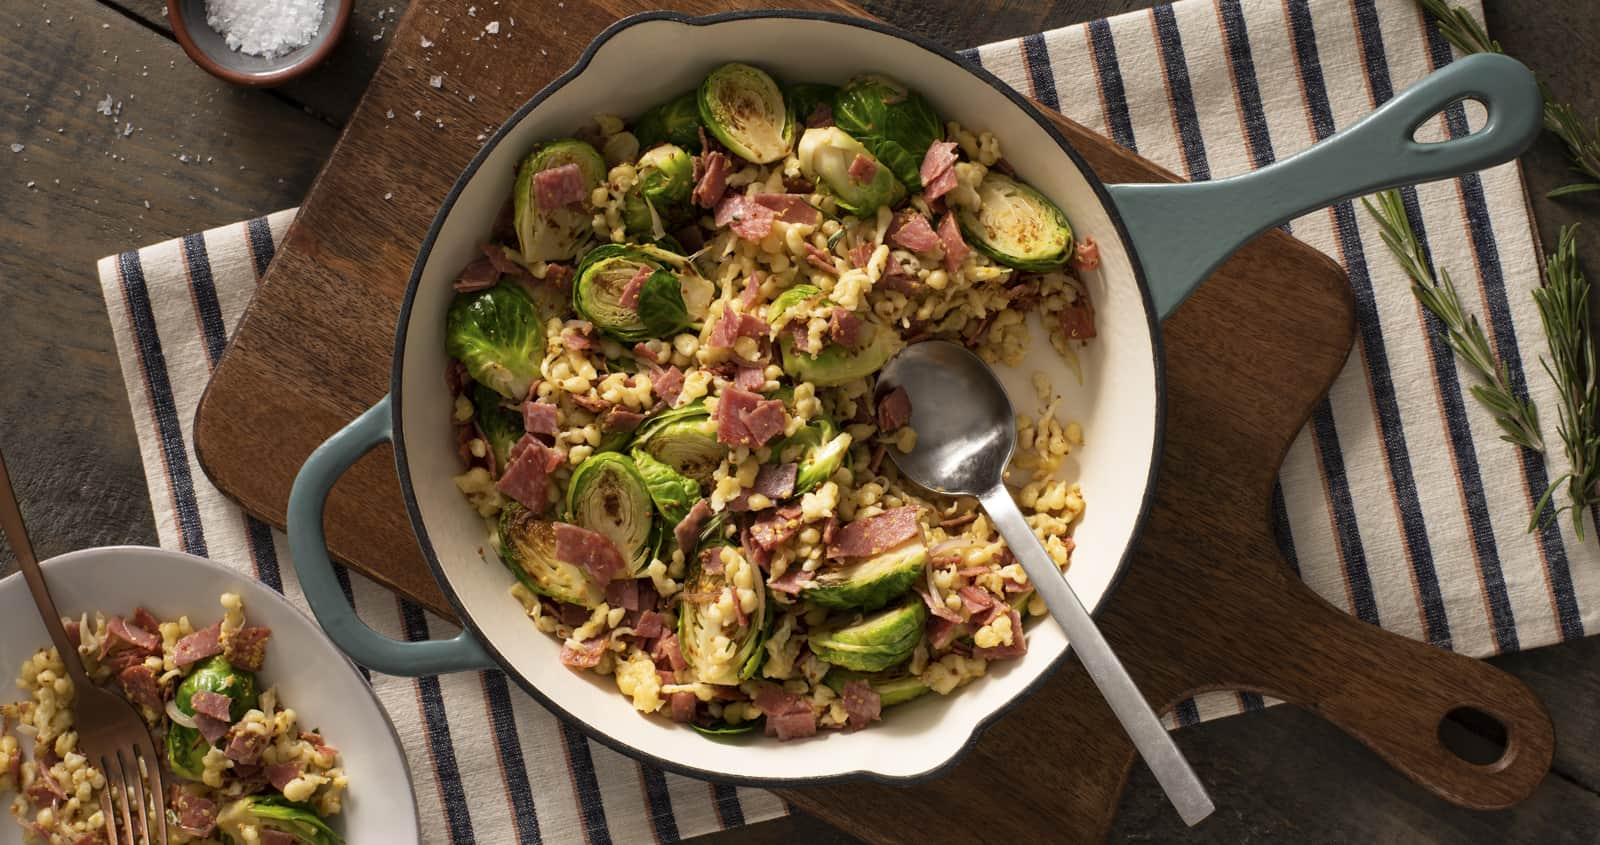 Spaetzle with Salami and Brussels Sprouts